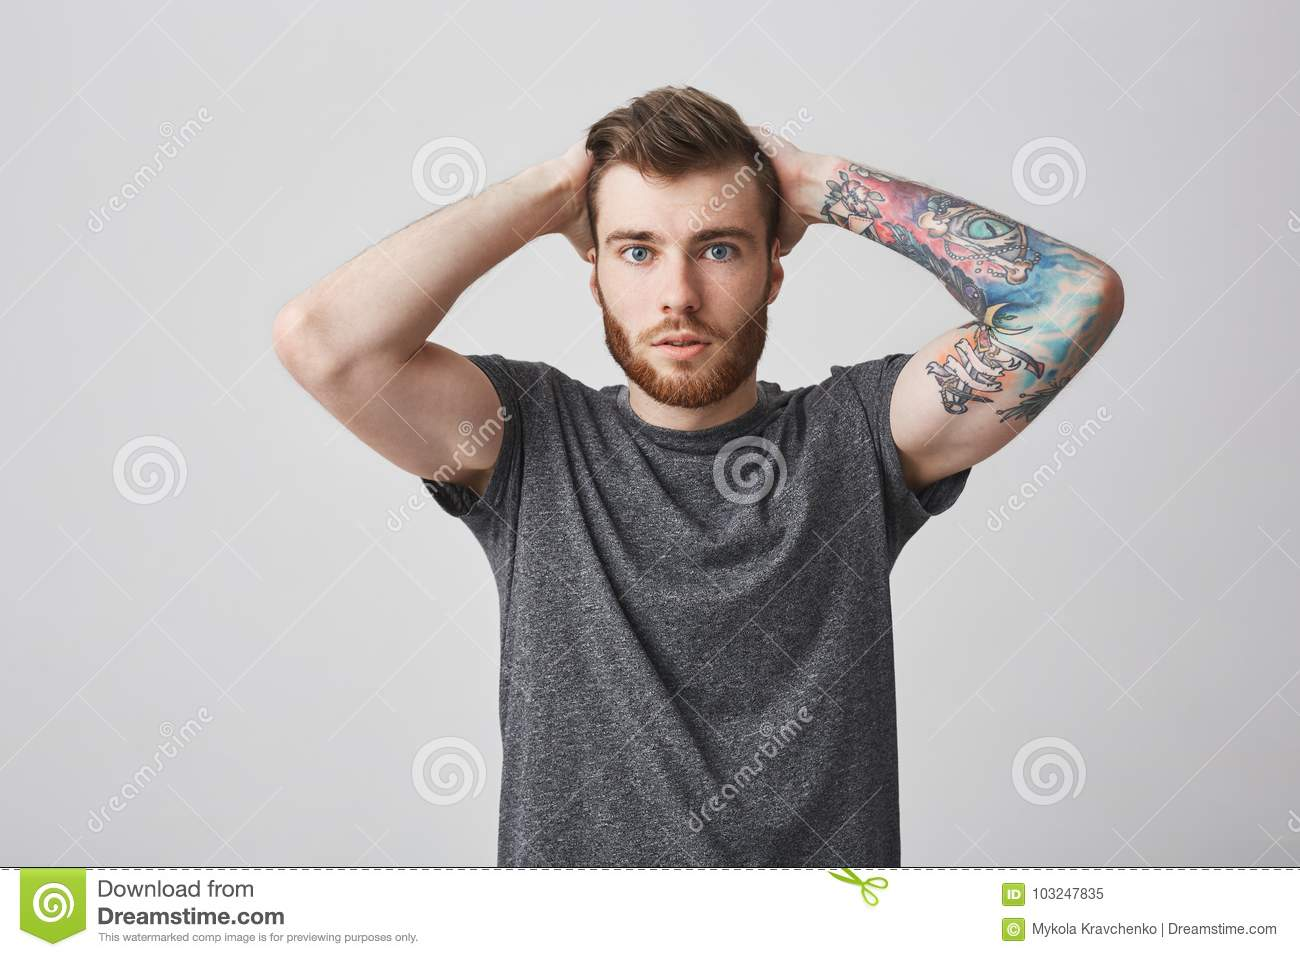 Beautiful Fashionable Bearded Men With Colored Tattoo On Arm And